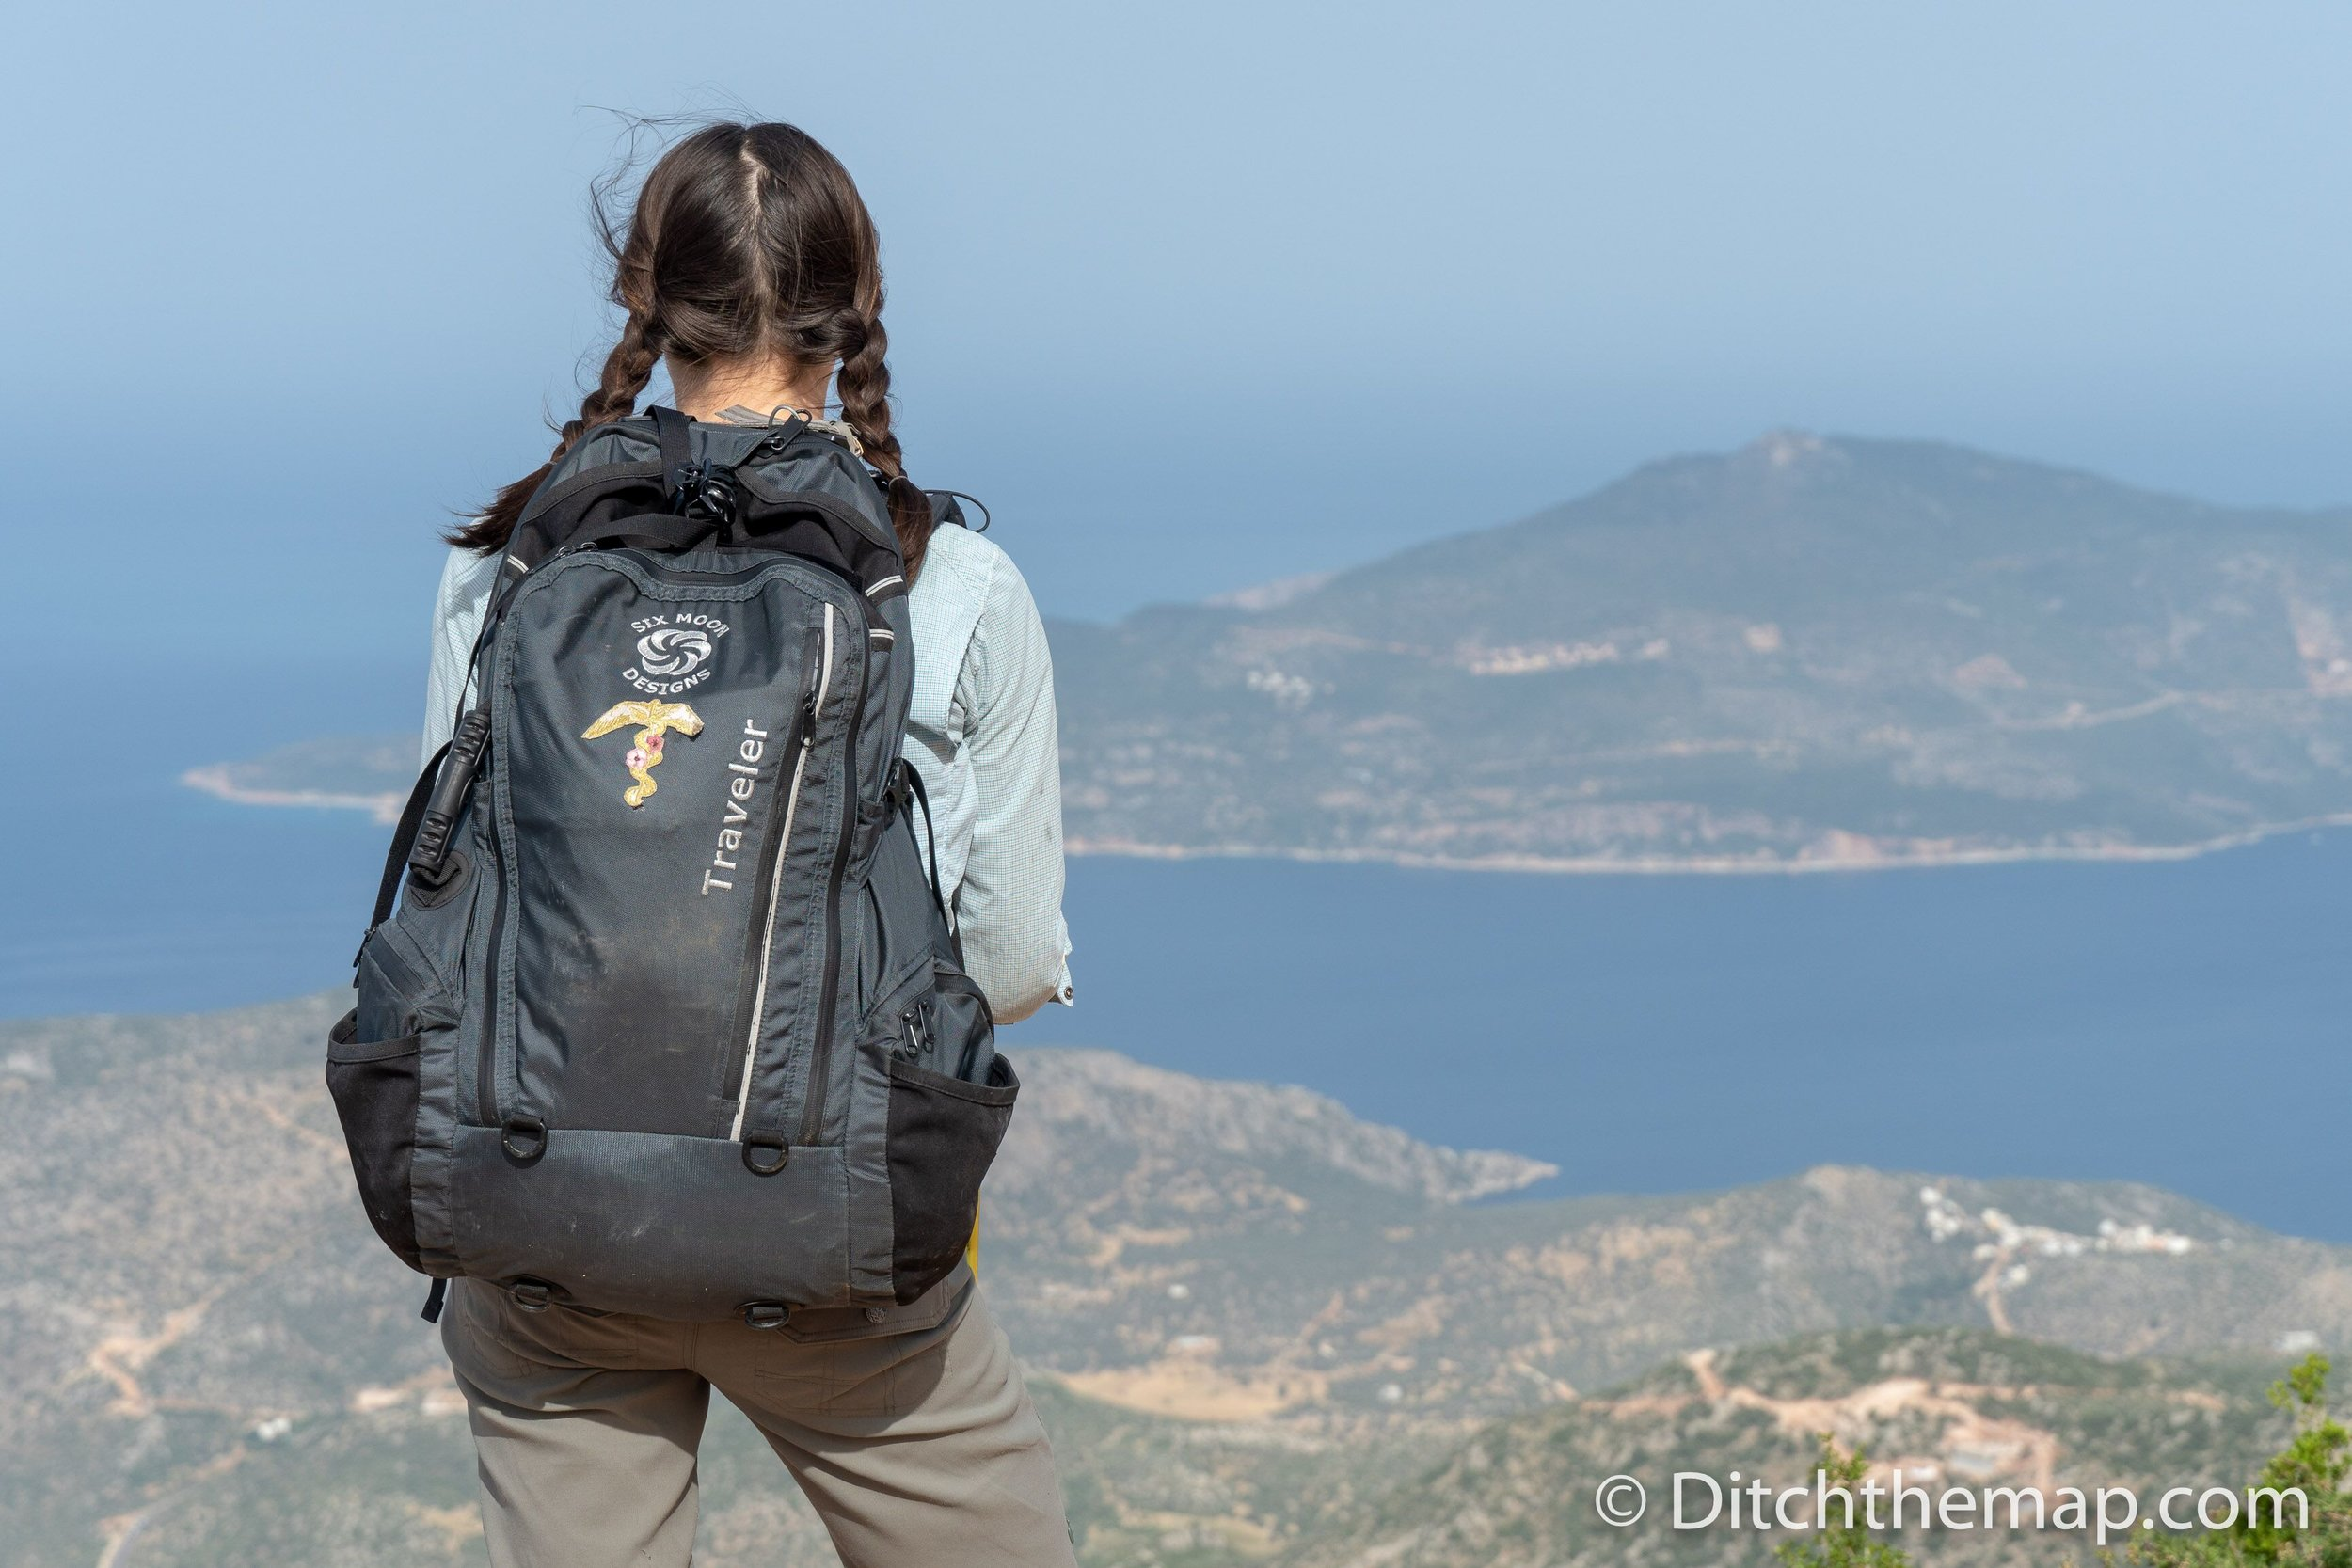 Overlooking the Mediterranean Sea while hiking the Lycian Way